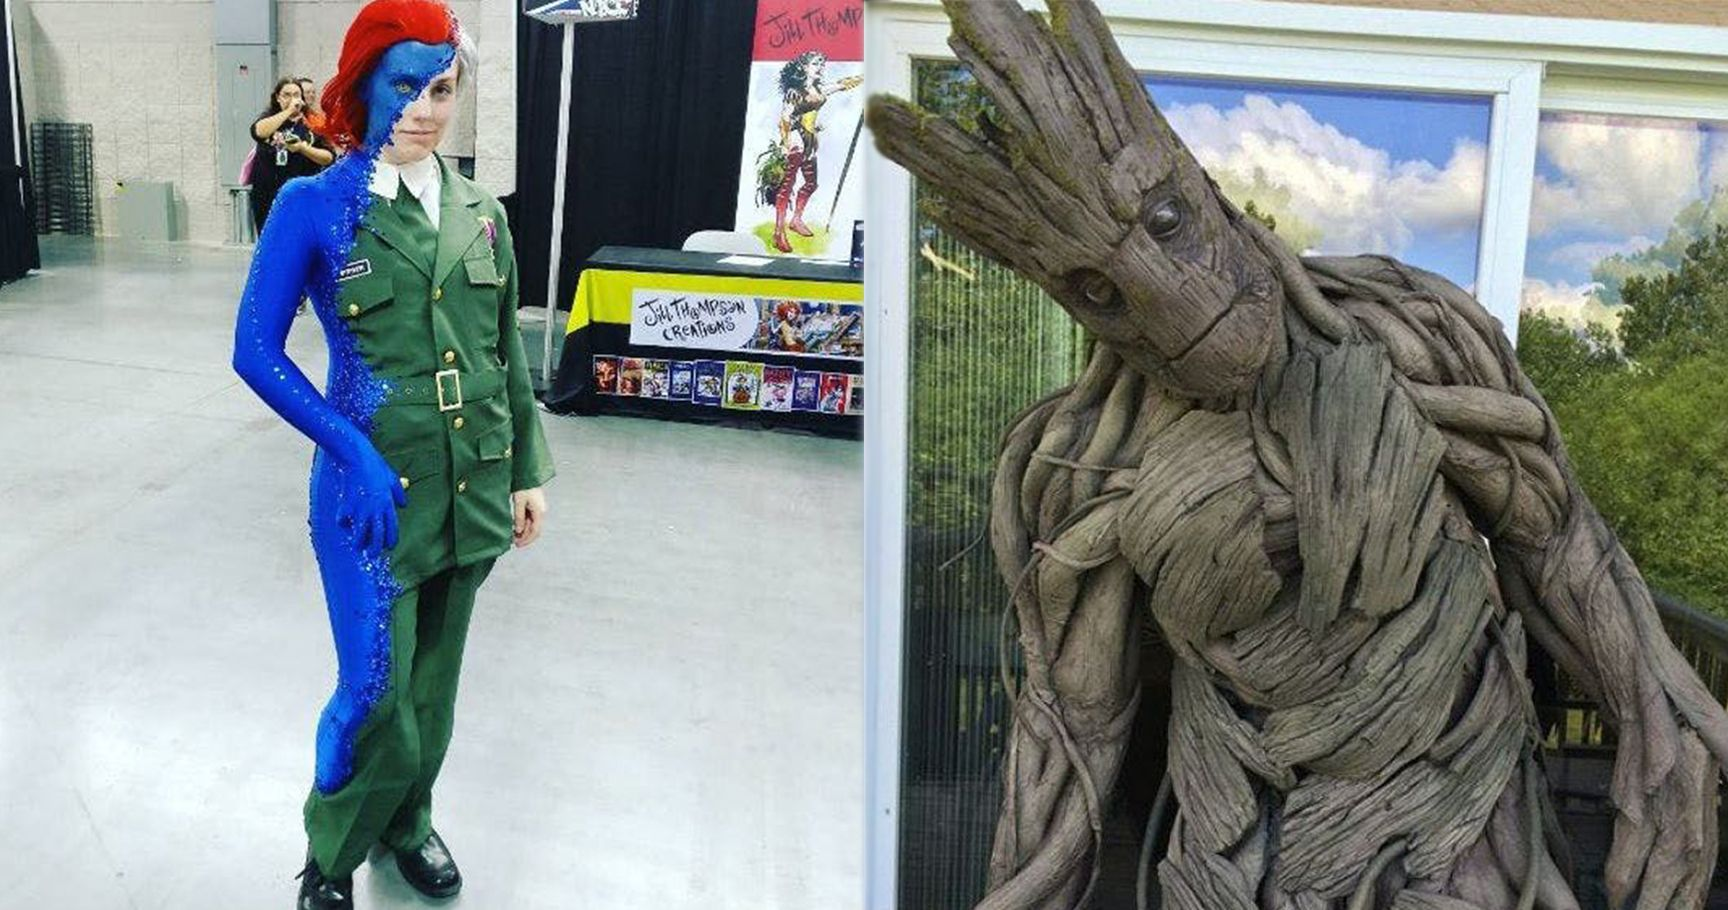 15 Of The Craziest Cosplay Attempts That Will Leave You In Awe